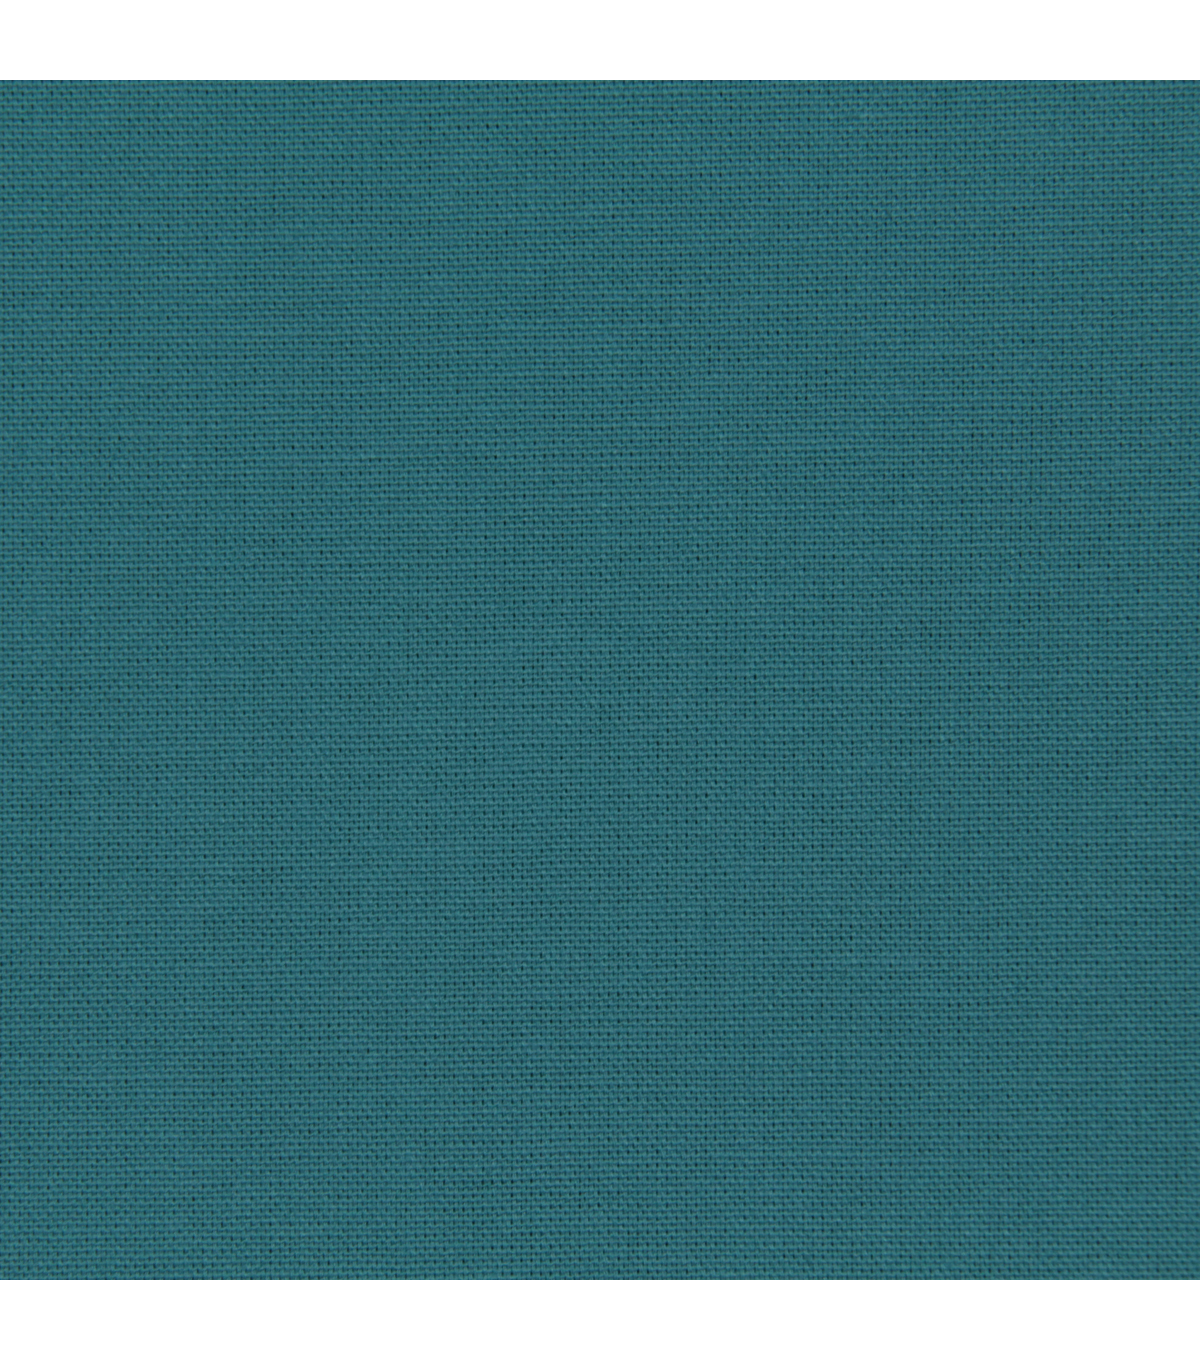 Home Decor 8\u0022x8\u0022 Fabric Swatch-Canvas Duck / Turquoise